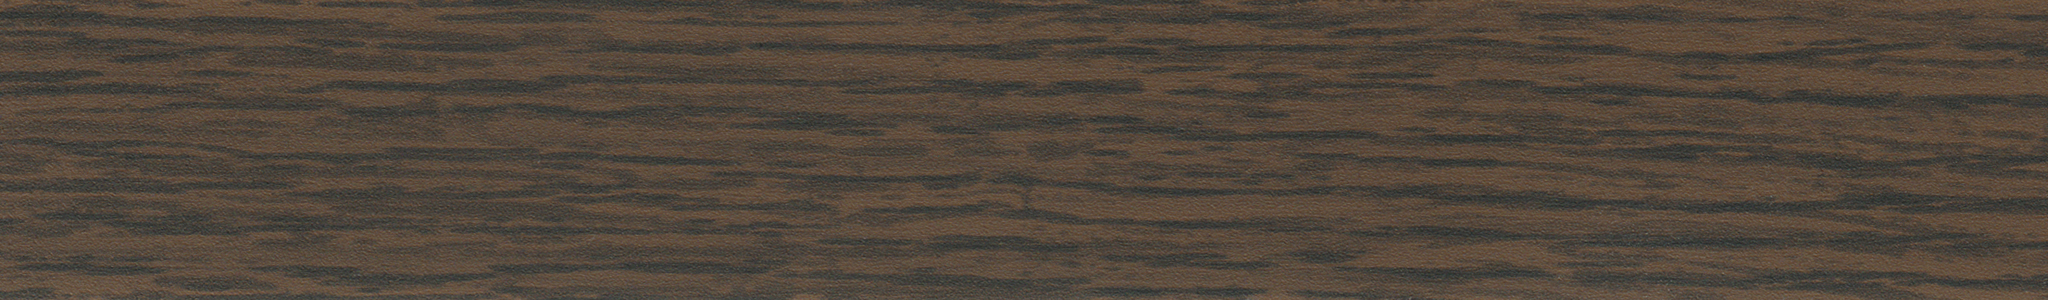 HD 28854 Chant ABS Wenge Perle